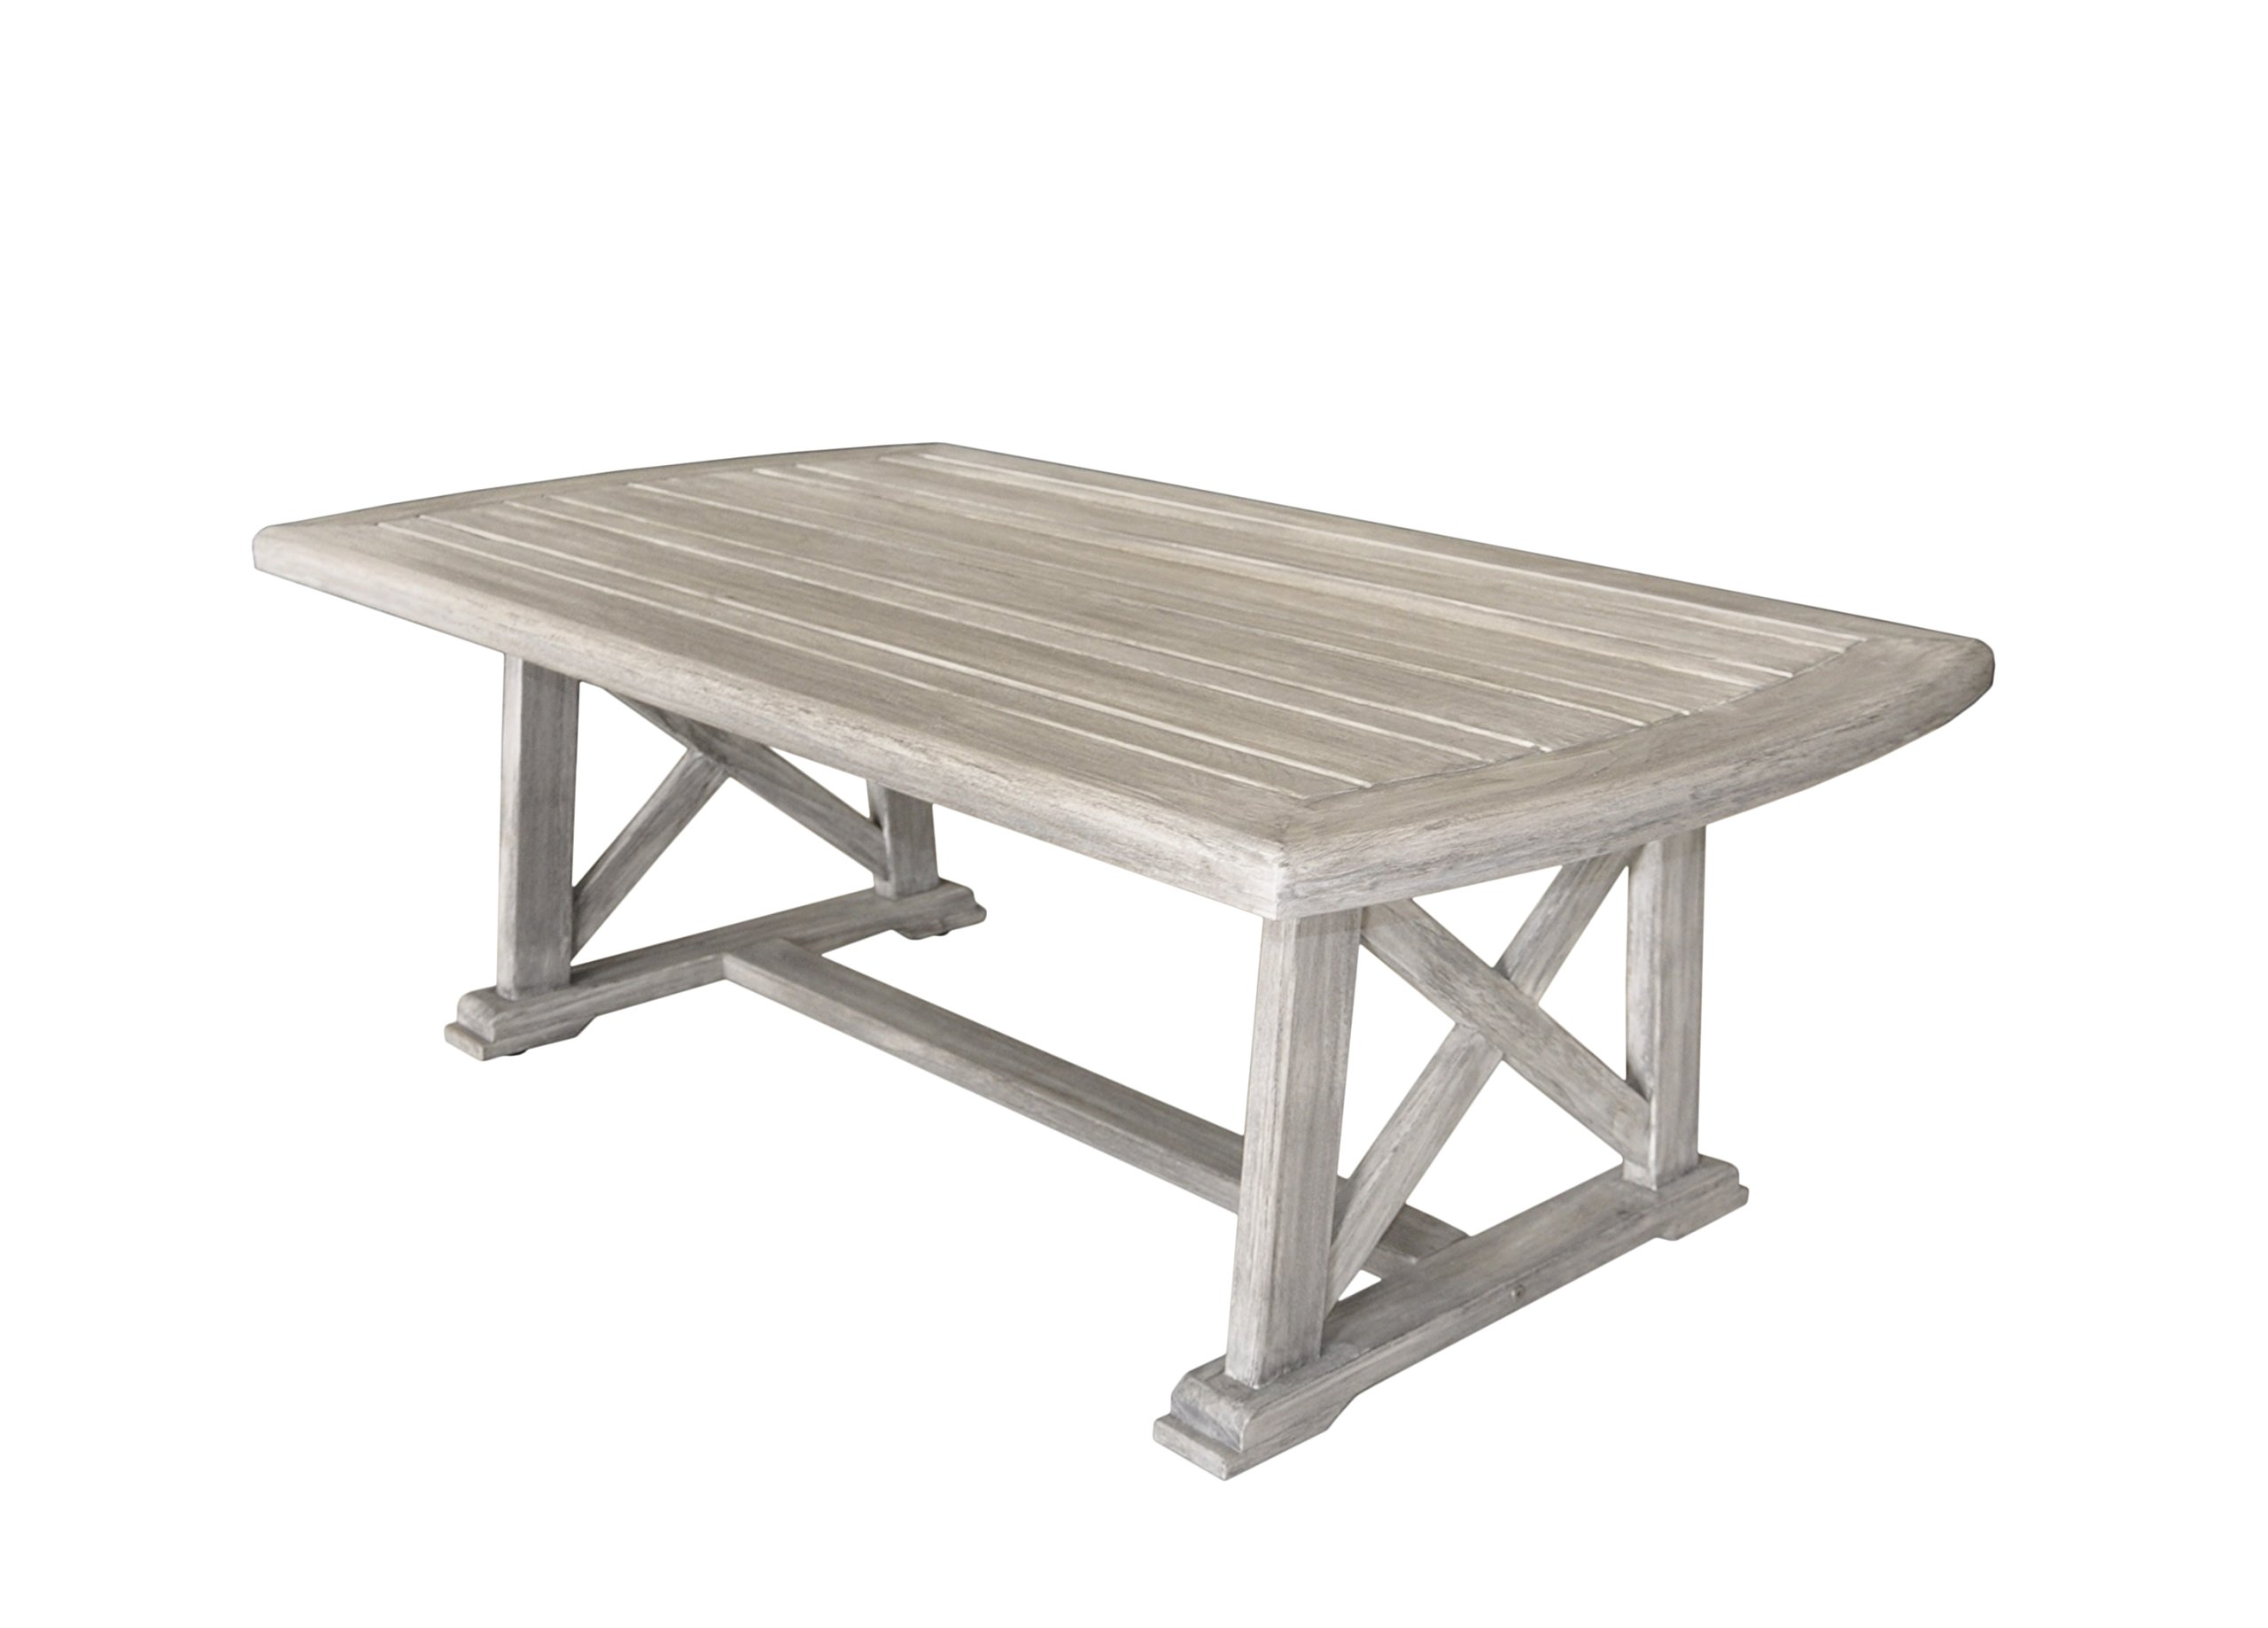 teak coffee table outdoor find side grey get quotations courtyard casual driftwood gray surf small space furniture solutions bistro tablecloth kohls bedspreads threshold accent